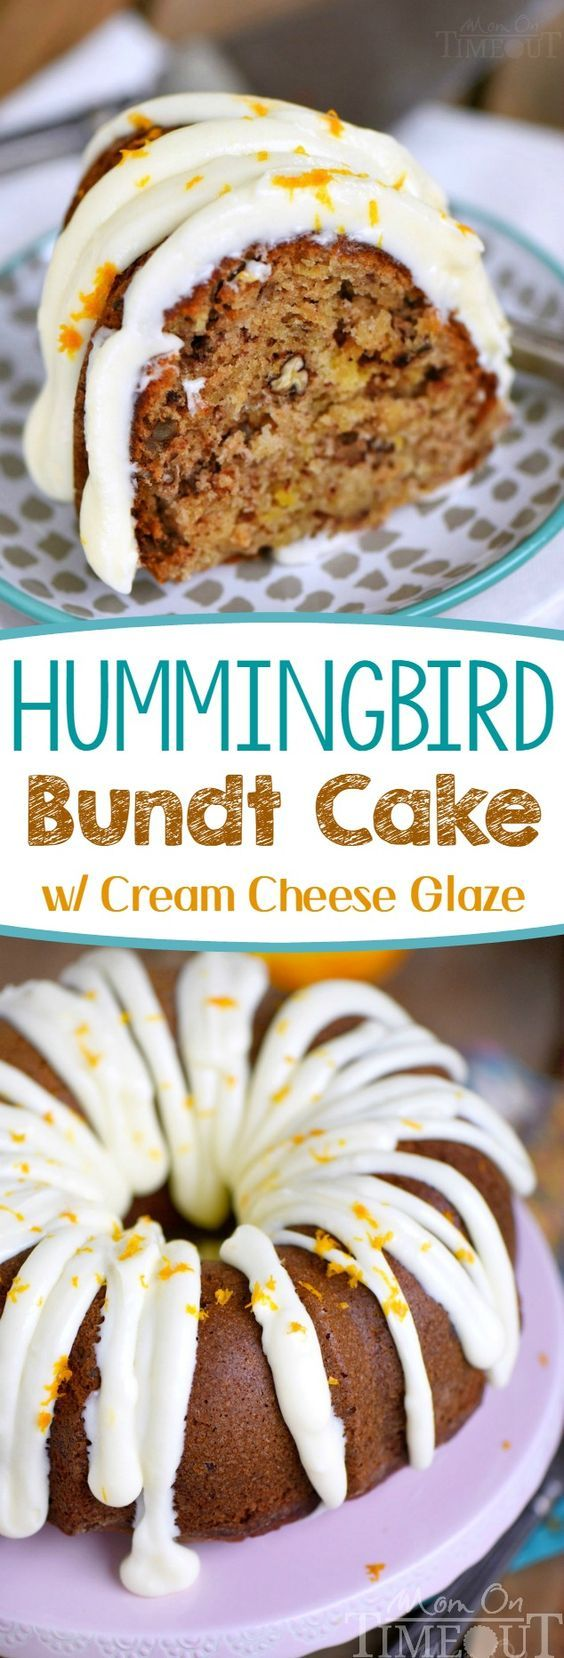 Hummingbird Bundt Cake with Cream Cheese Glaze will be the star of the show! This delightfully moist cake is made with bananas, pineapple, pecans and spiced with cinnamon, cloves and nutmeg - every bite of this easy cake is pure bliss!   Mom On Timeout